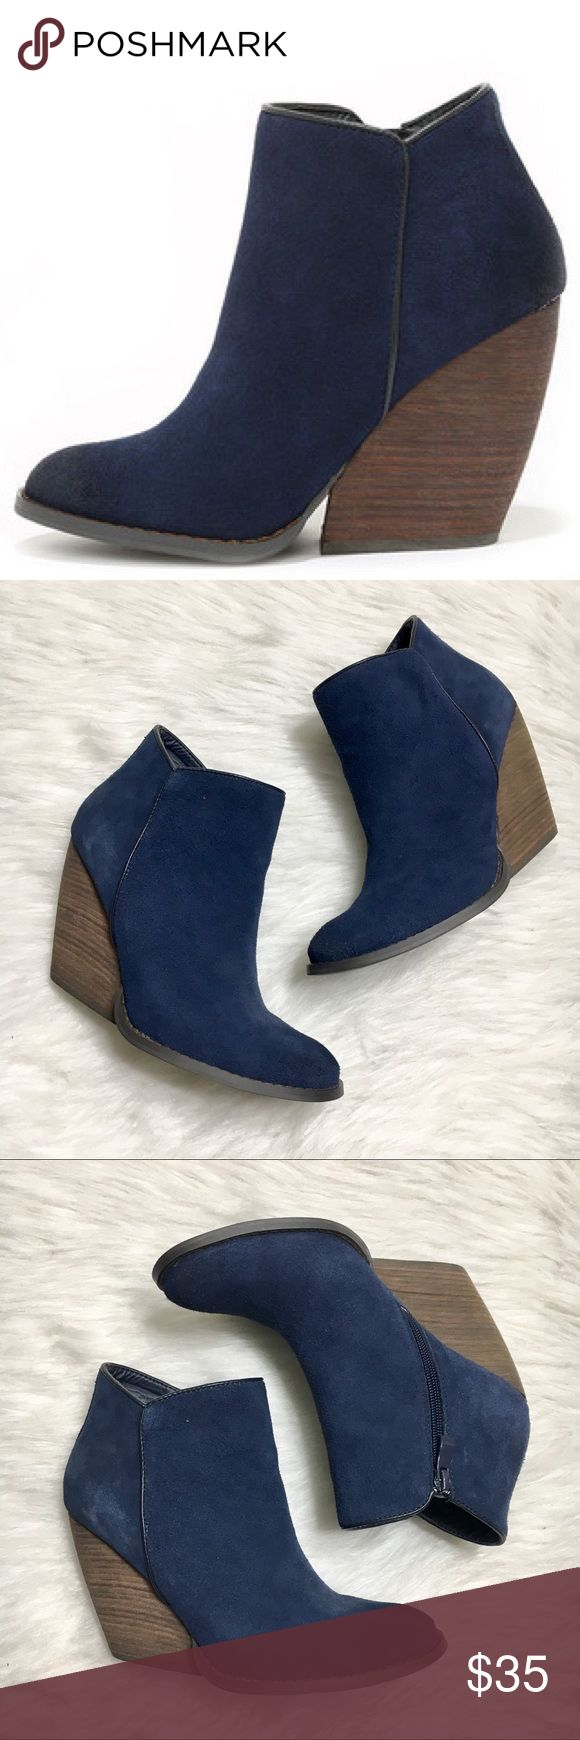 """Very Volatile Whitby Navy Ankle Boots Great condition! No flaws! Leather upper. Heel height: 4"""" Wedge has a really cool cut to it. Very Volatile Shoes Ankle Boots & Booties"""